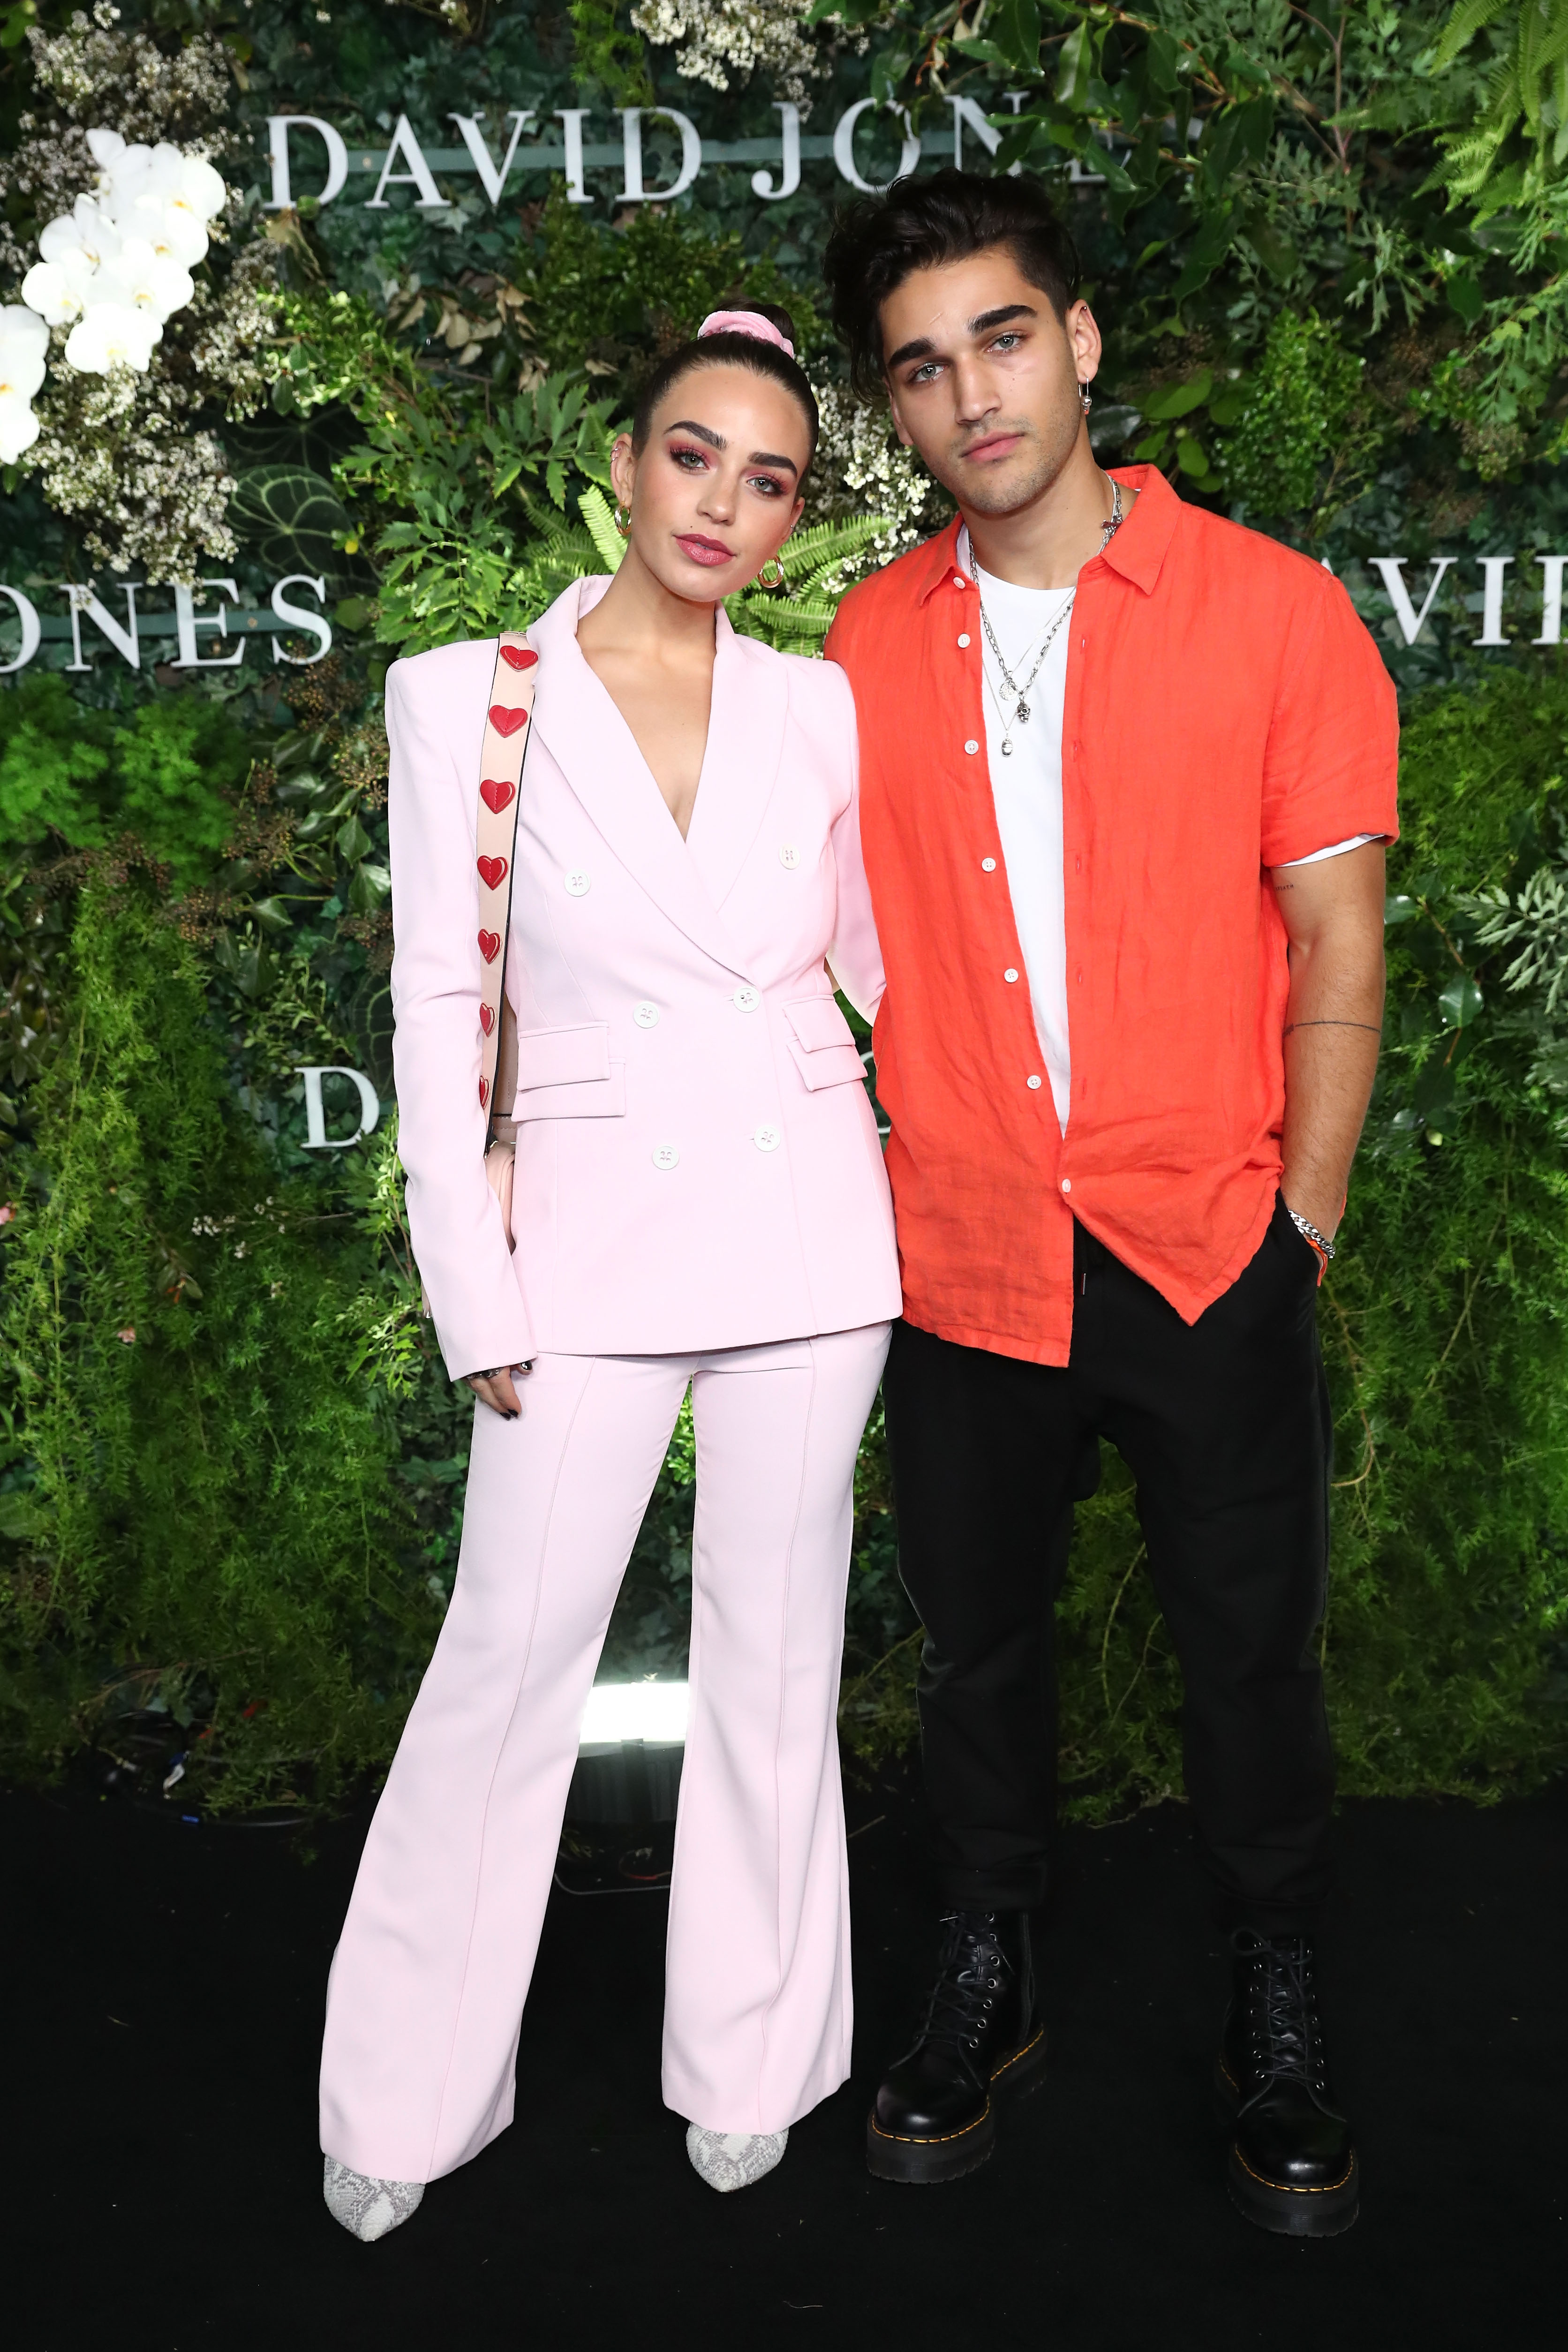 SYDNEY, AUSTRALIA - AUGUST 08: Cartia Mallan and Josh Hughston attend the David Jones Spring Summer 18 Collections Launch at Fox Studios on August 8, 2018 in Sydney, Australia.  (Photo by Mark Metcalfe/Getty Images for David Jones) *** Local Caption *** Cartia Mallan; Josh Hughston